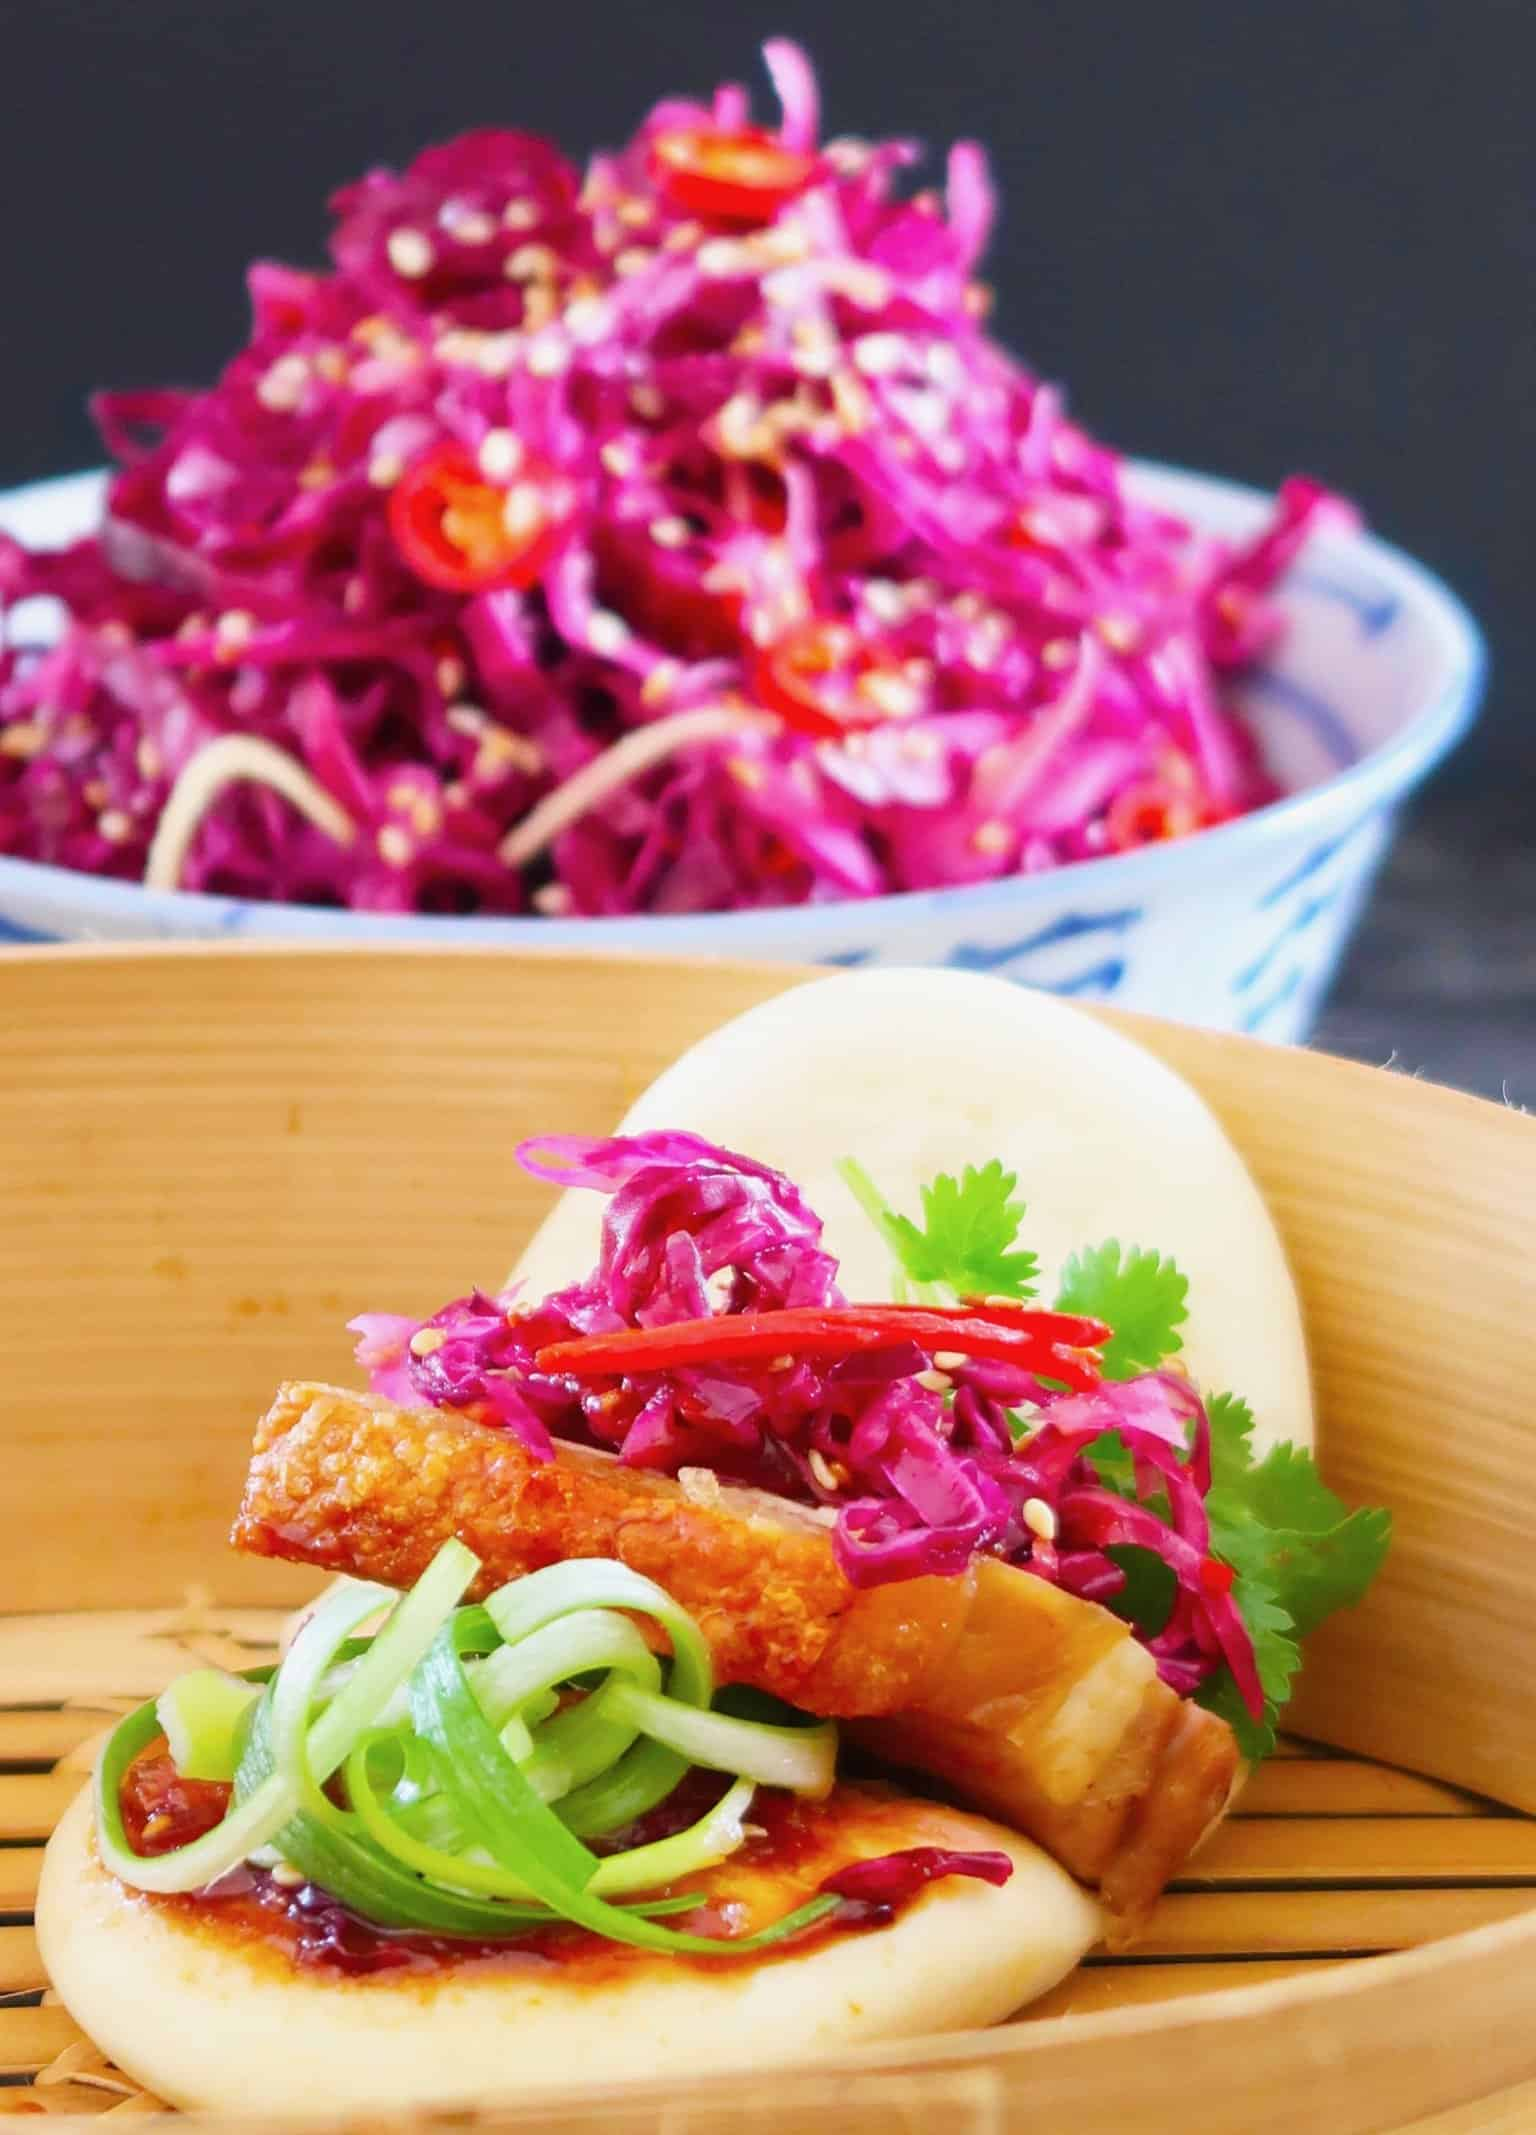 Chinese crispy pork belly slice served in a bao bun with red pickled cabbage